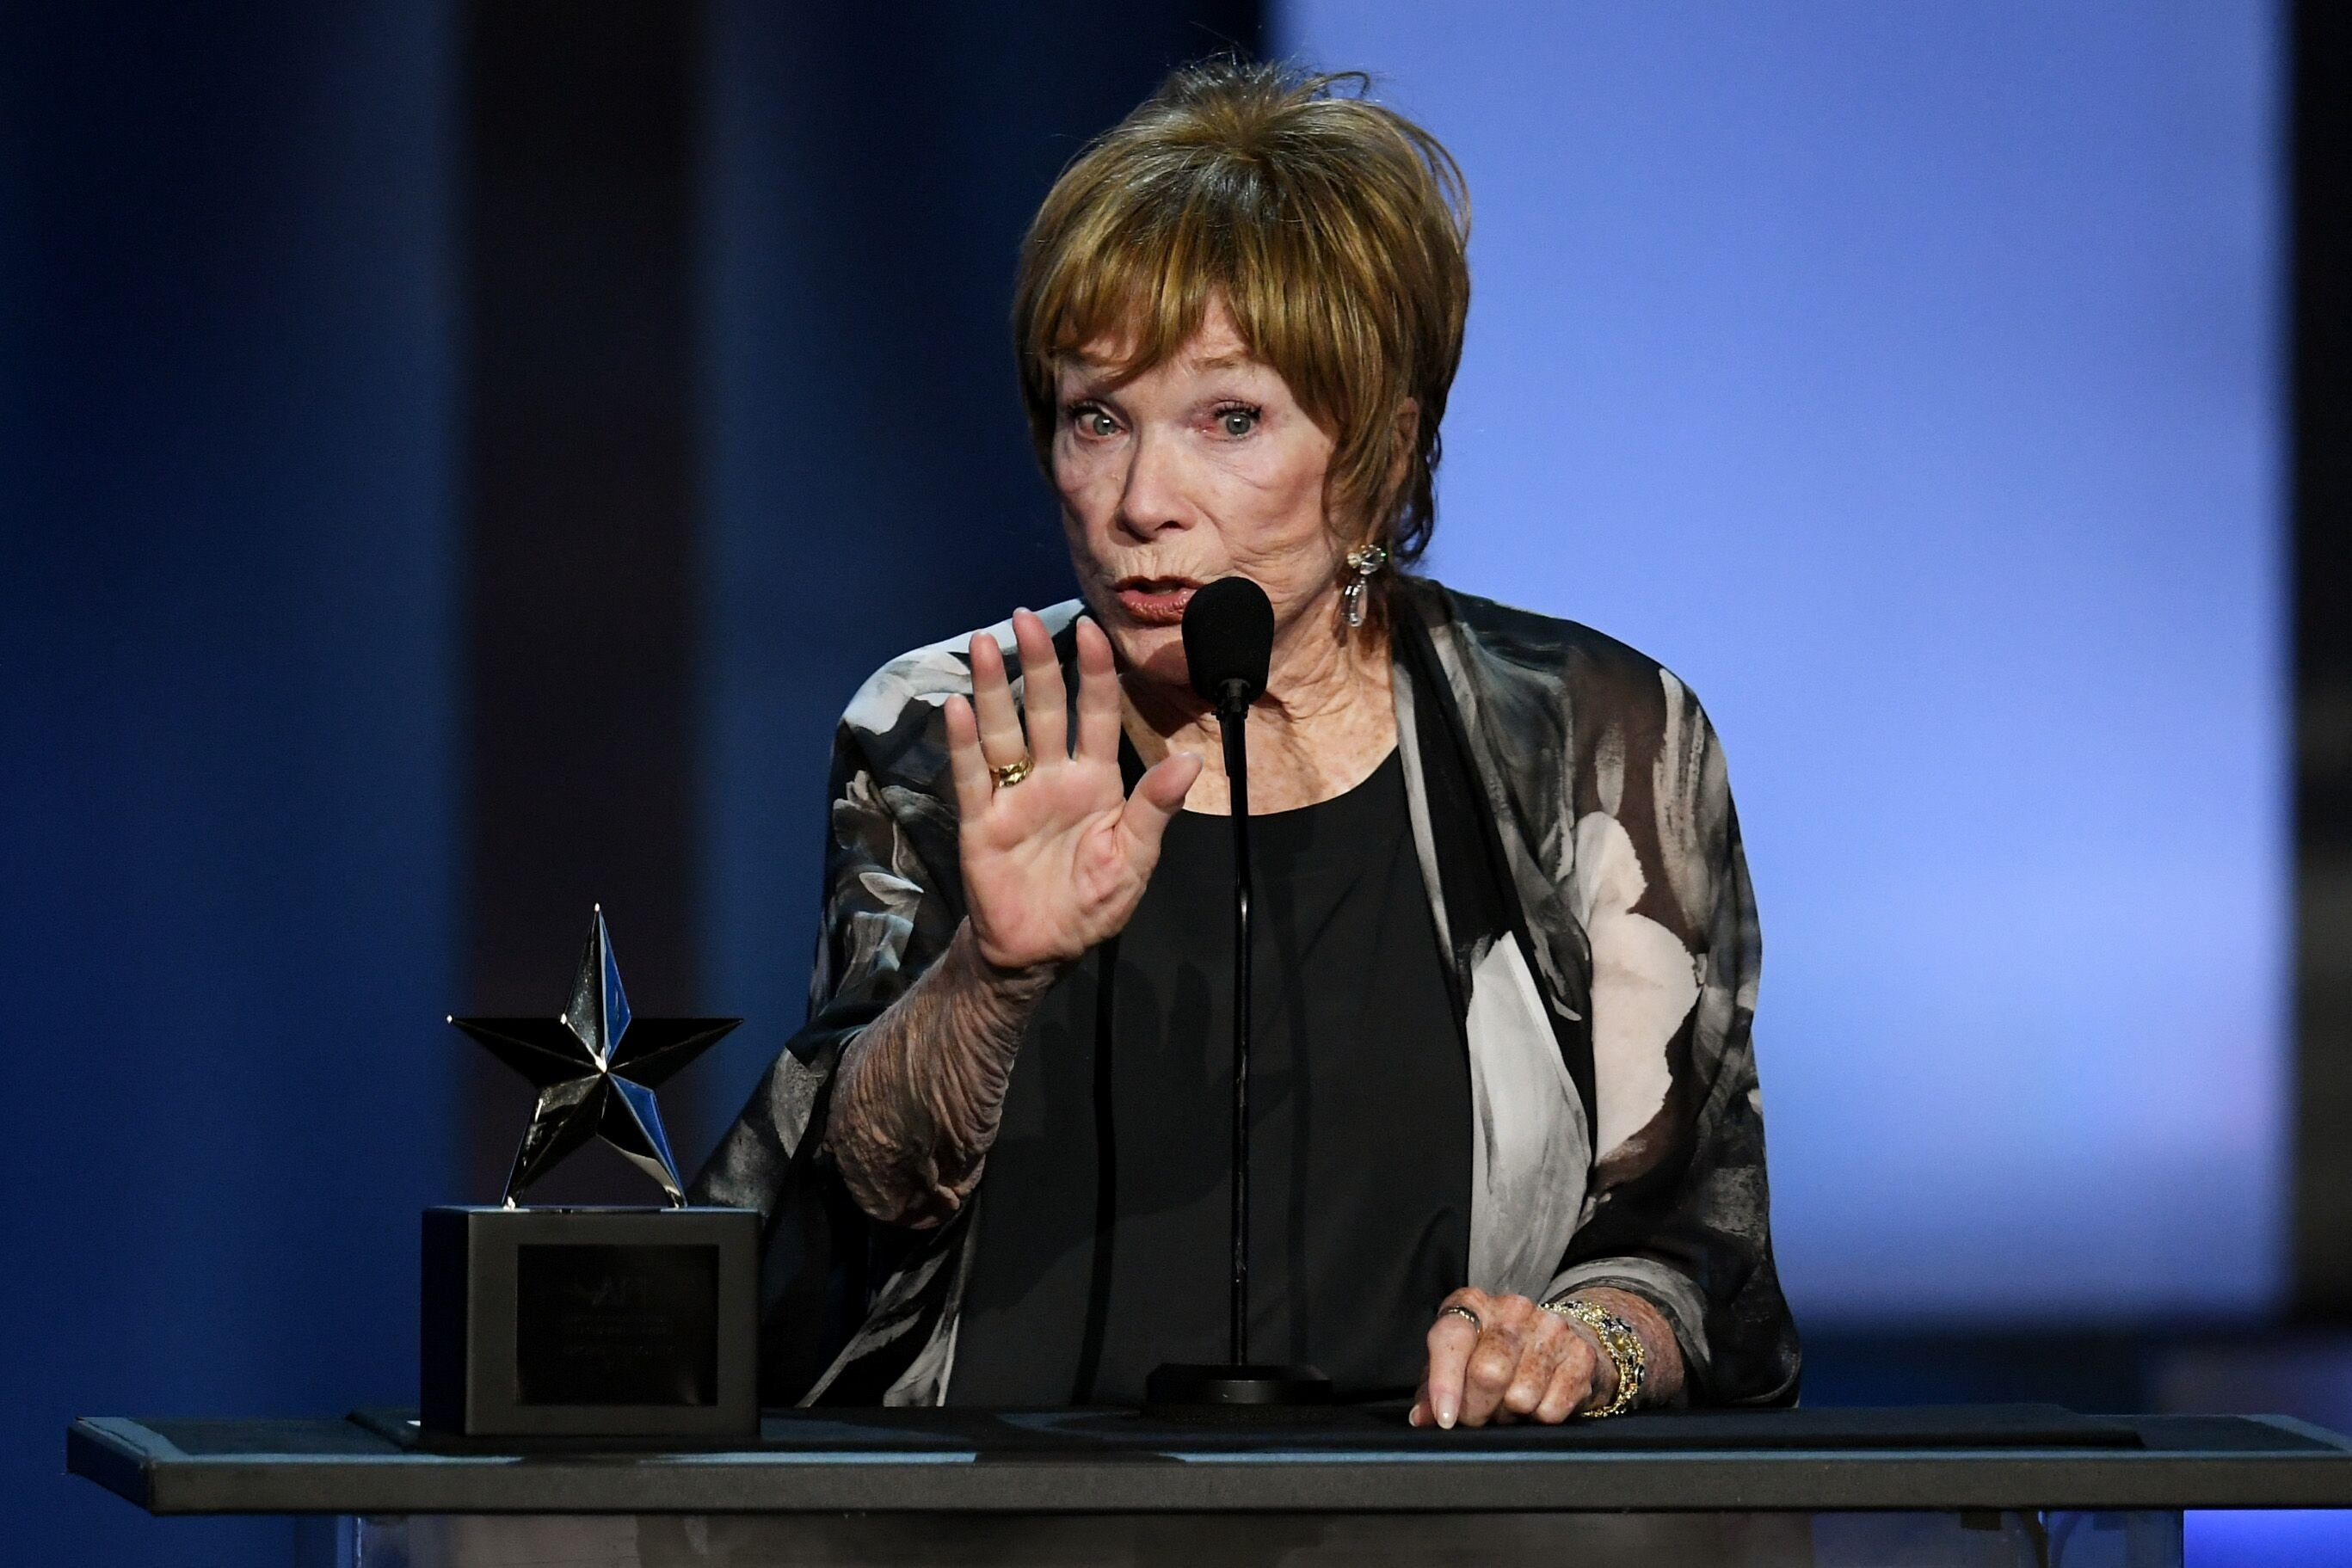 Shirley MacLaine at the American Film Institute's 46th Life Achievement Award Gala on June 7, 2018 in Hollywood, California   Photo: Getty Images